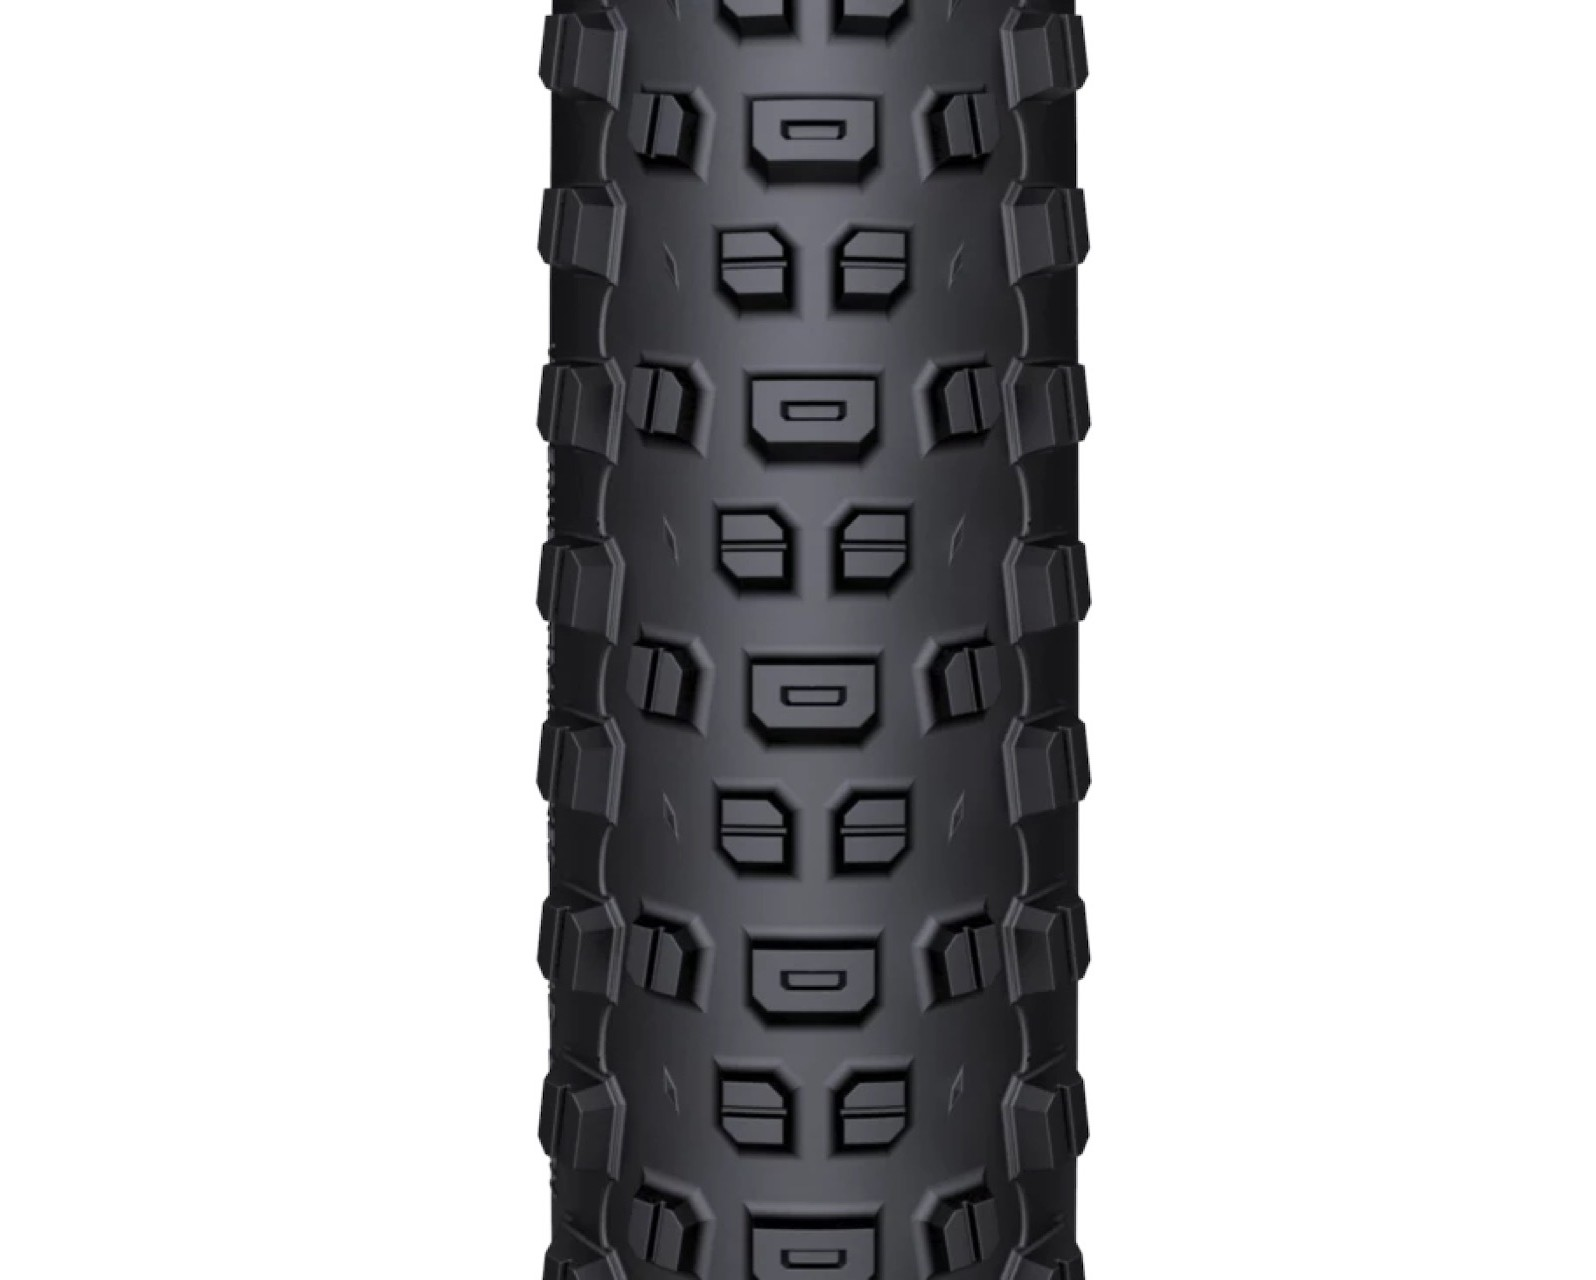 Black 2.80 x 27.5/'/' Fast Folding Tire New WTB Ranger TCS Light